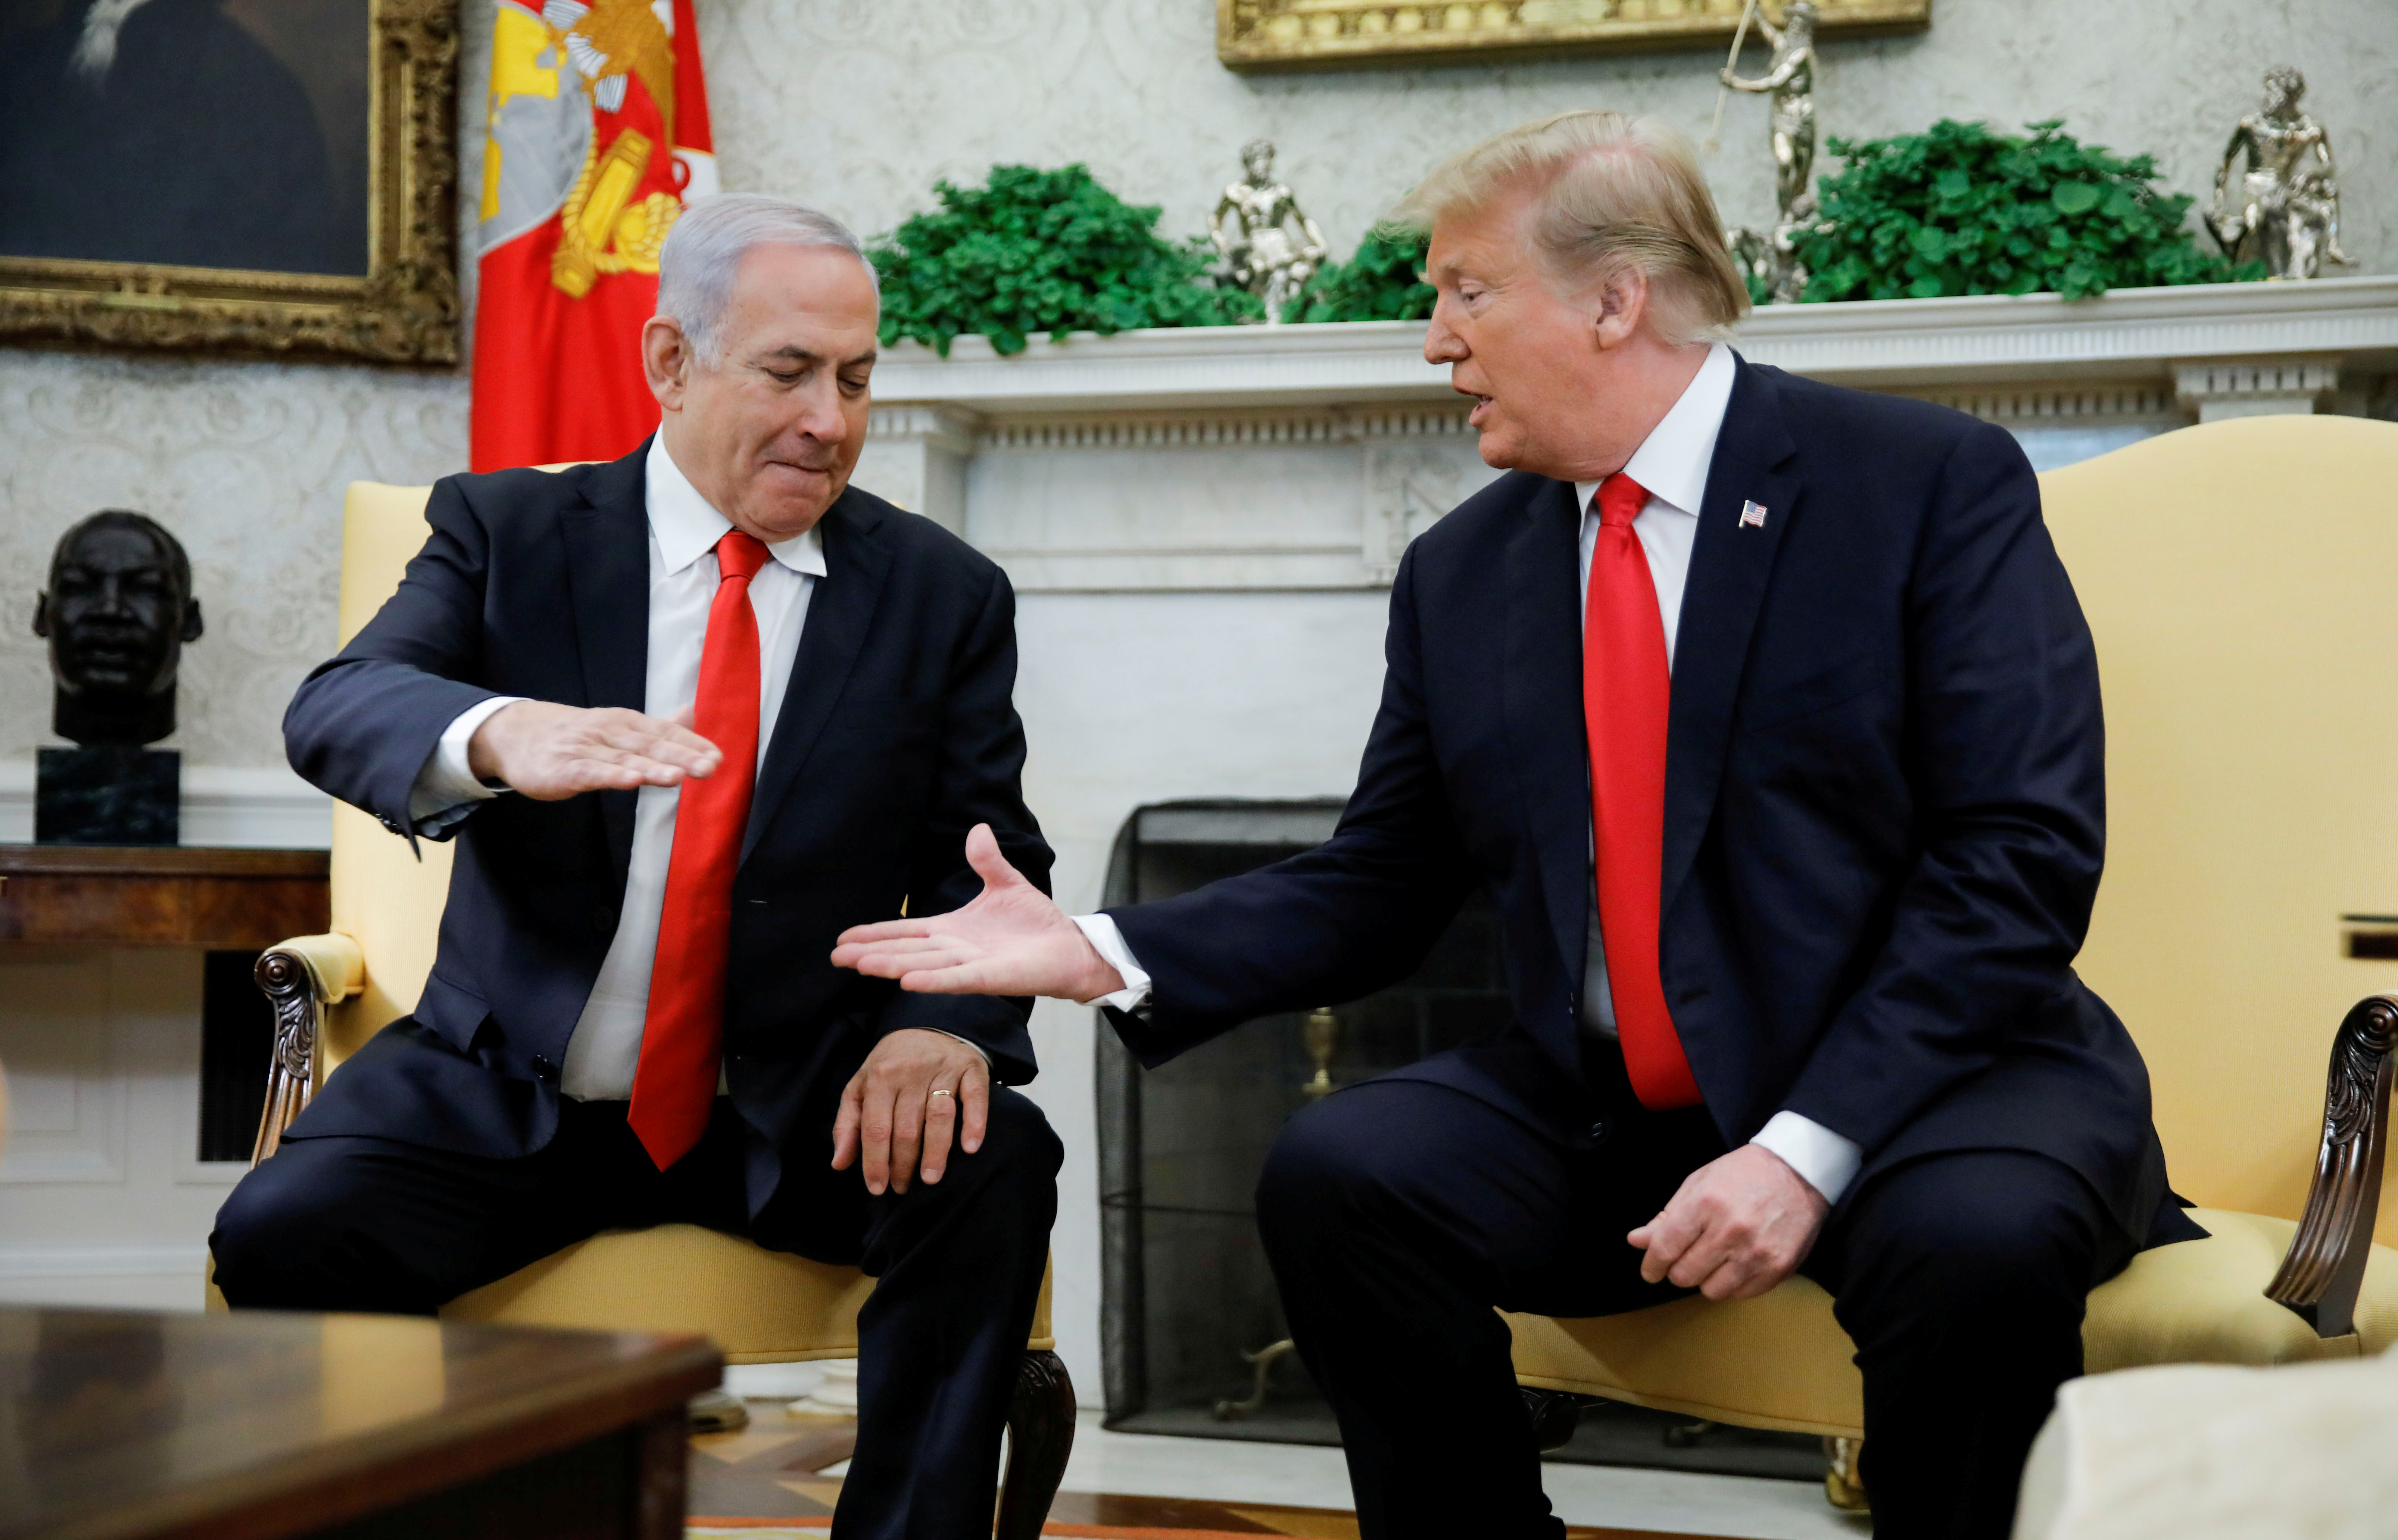 Israel's Prime Minister Benjamin Netanyahu shakes hands with U.S. President Donald Trump during their meeting in the Oval Office at the White House in Washington, U.S., March 25, 2019. REUTERS/Carlos Barria